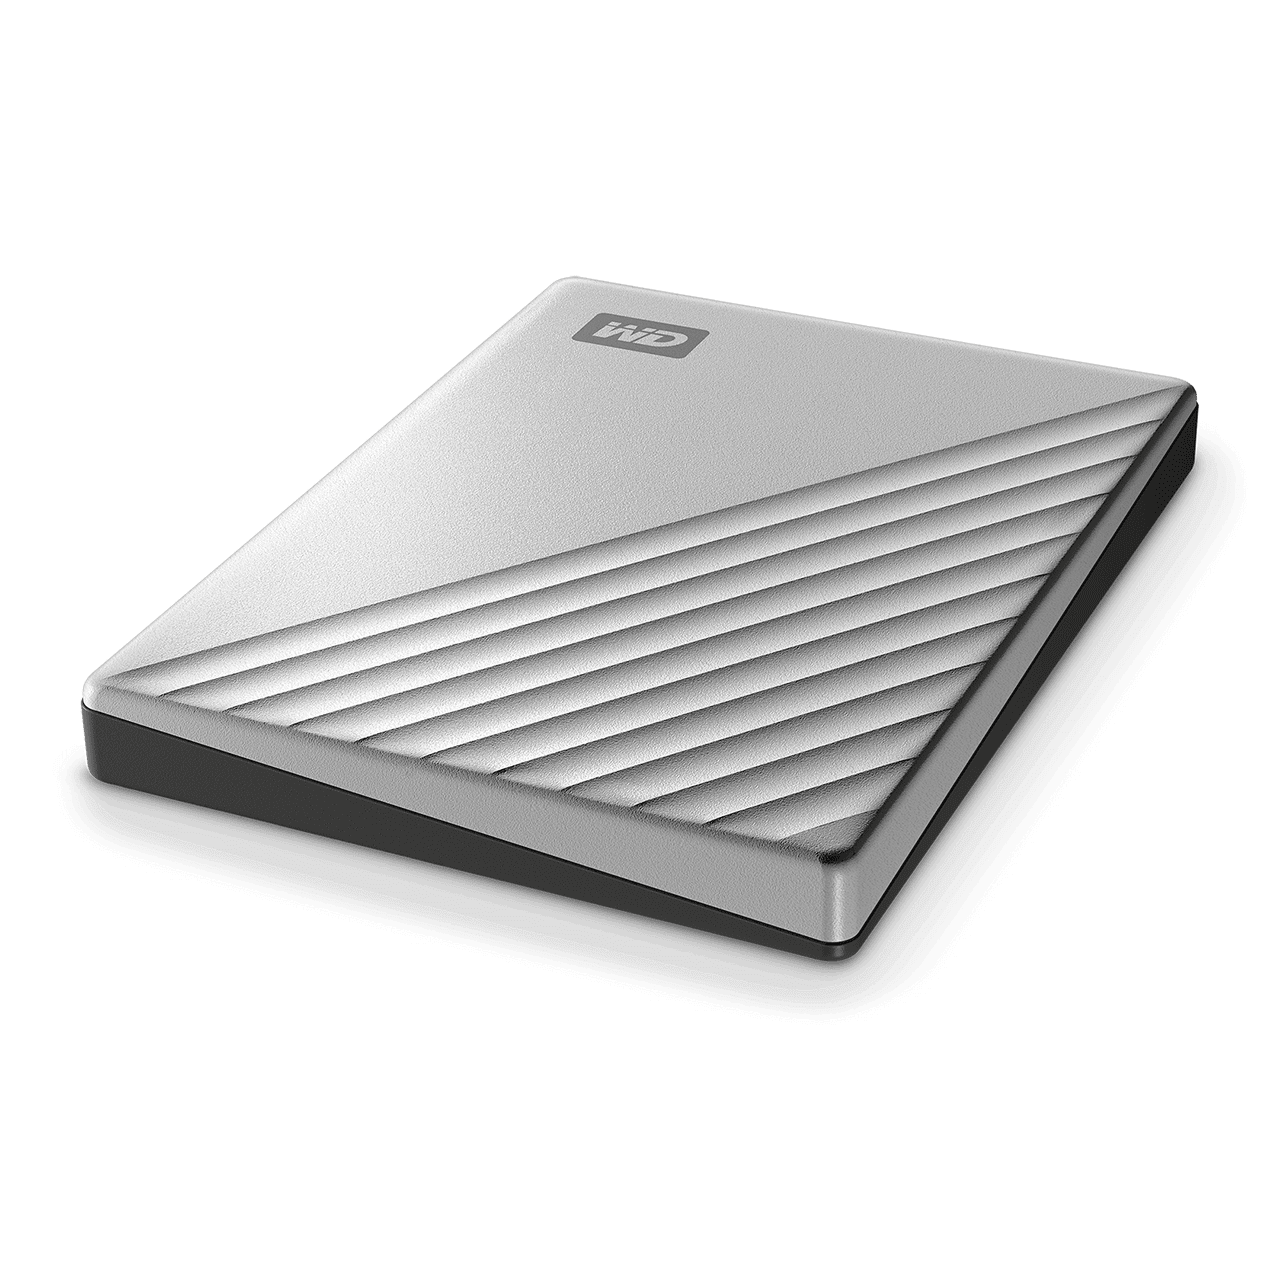 My Passport Ultra 2TB Silver - Image3